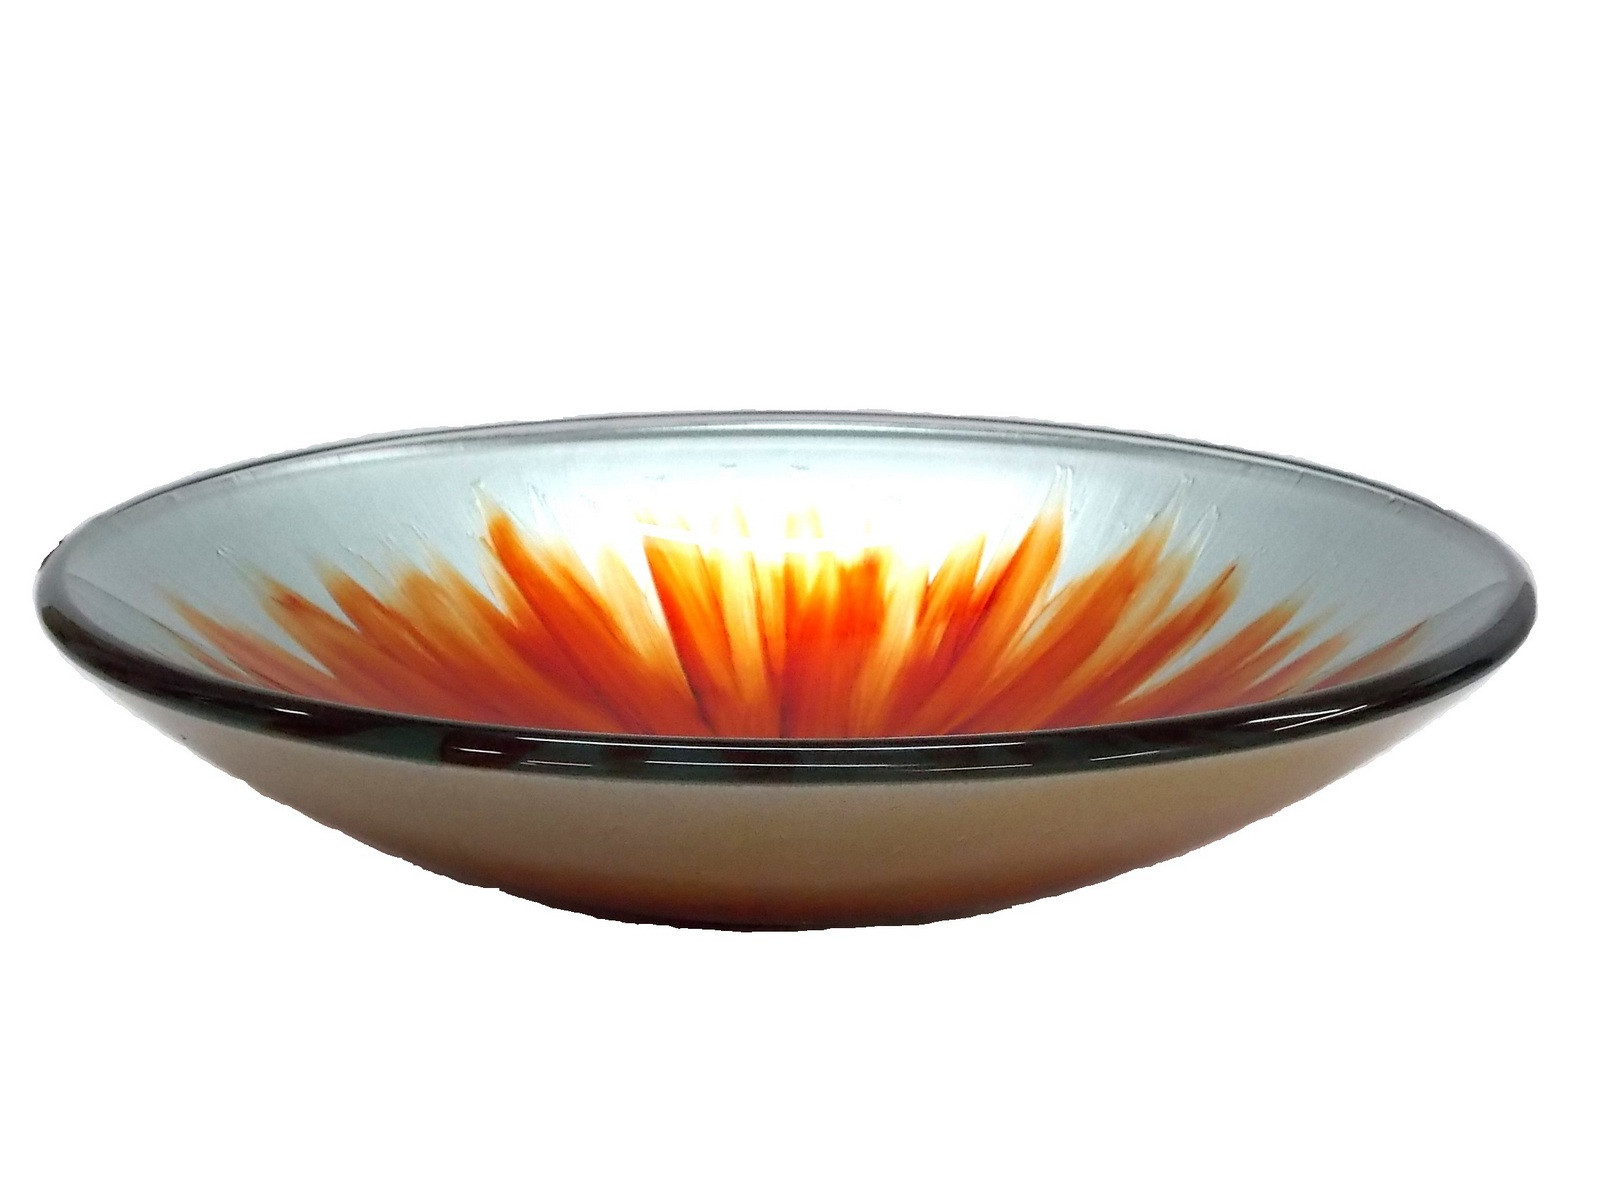 Eden Bath EB_GS38 Blossom Above Mounted Tempered Glass Vessel Sink In Orange